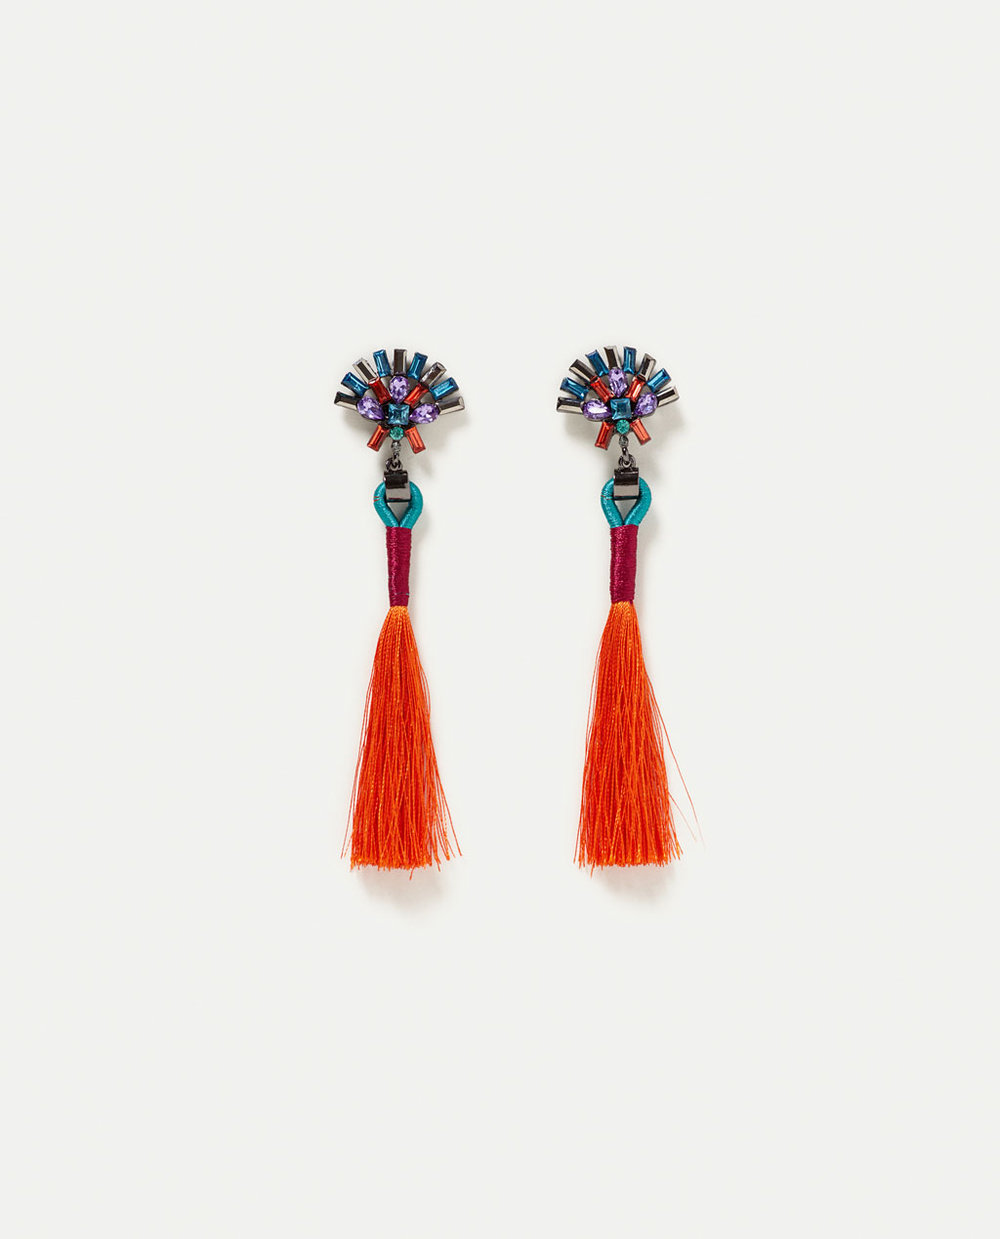 zara earrings.jpg